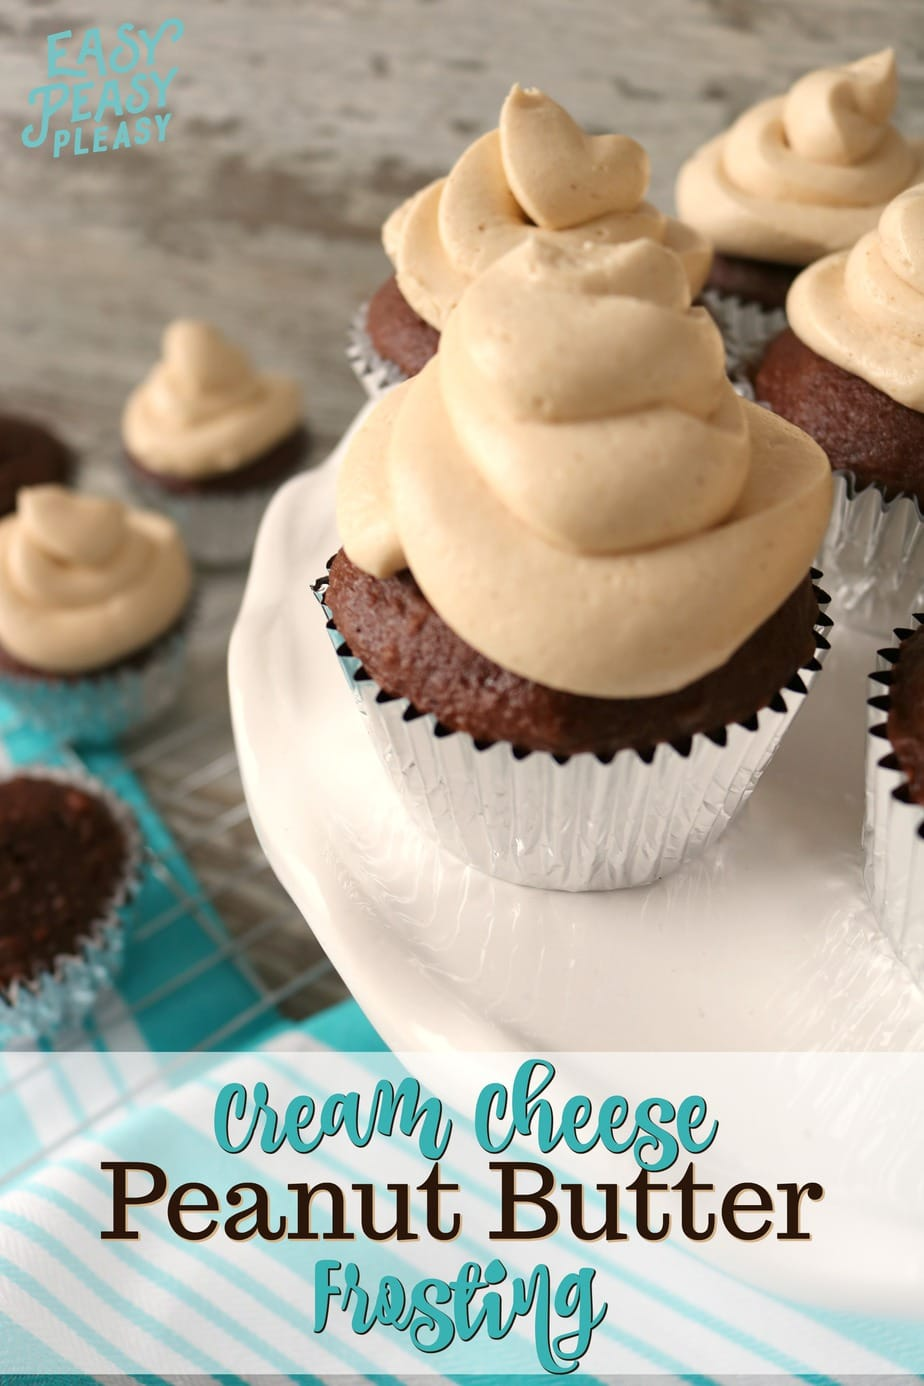 This Cream Cheese Peanut Butter Frosting is only 4 ingredients and will take your cupcakes or boxed cake mix to the next level. #frosting #peanutbutter #creamcheese